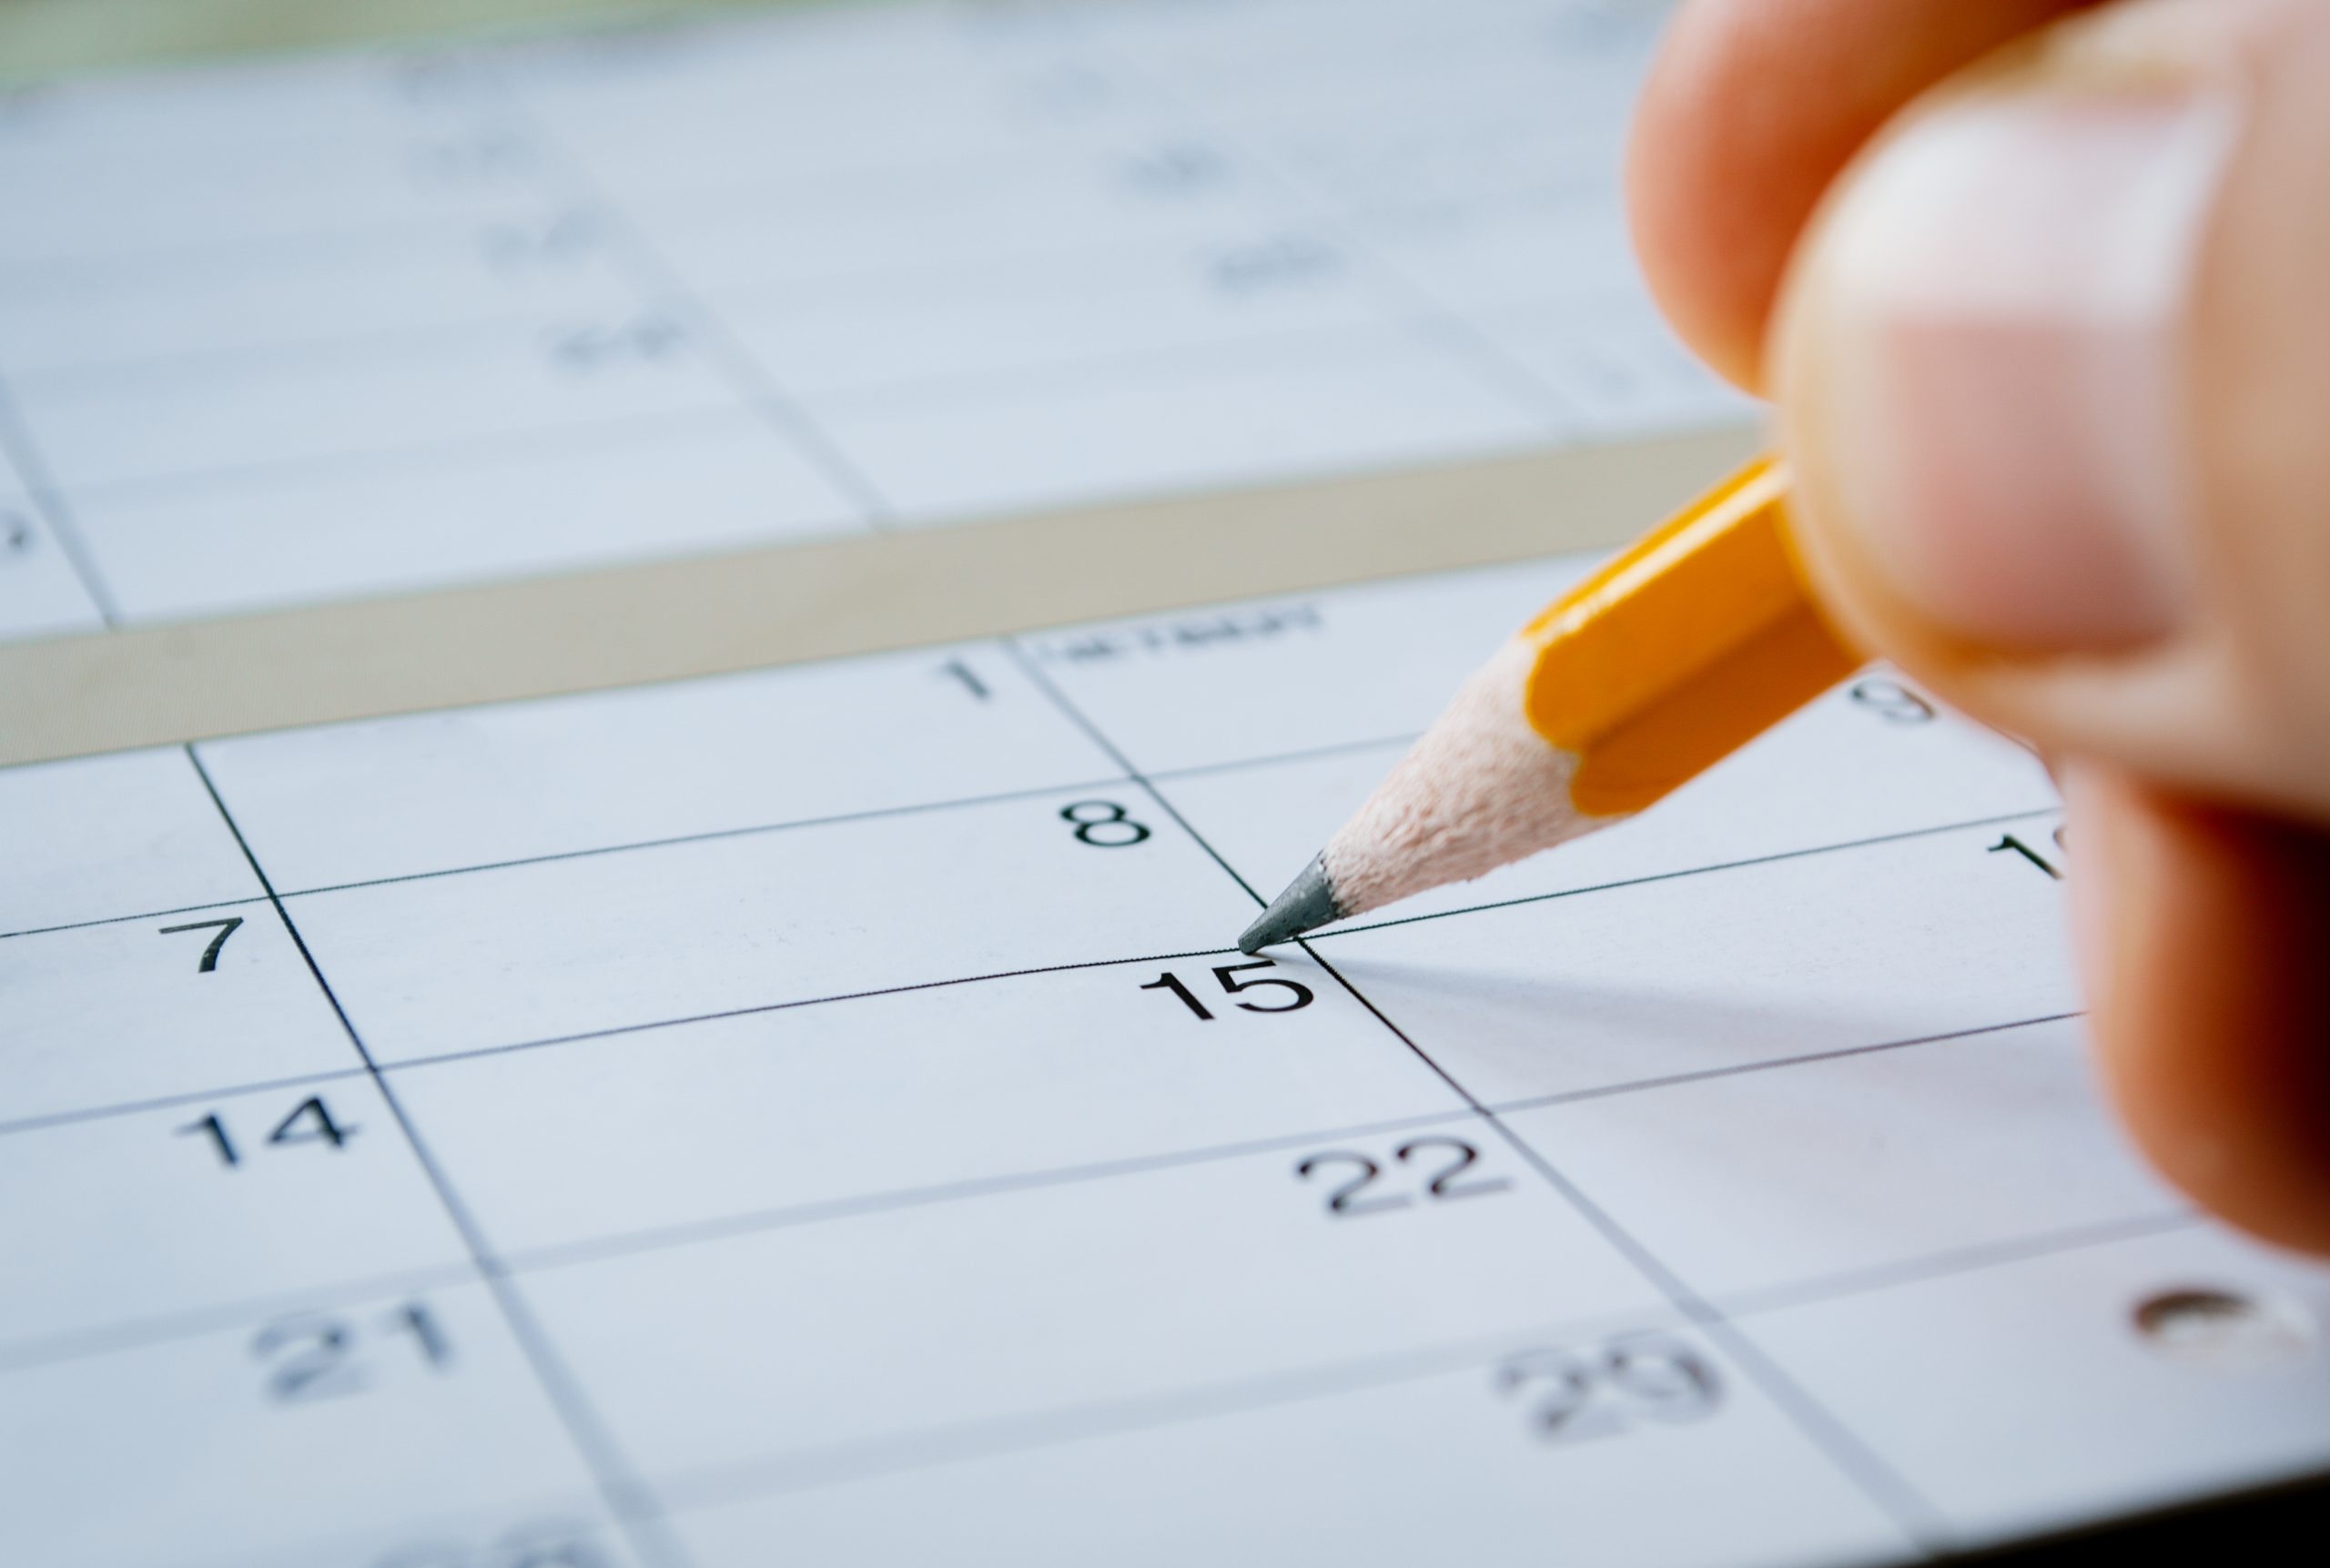 Life planning - making appointments in calendar